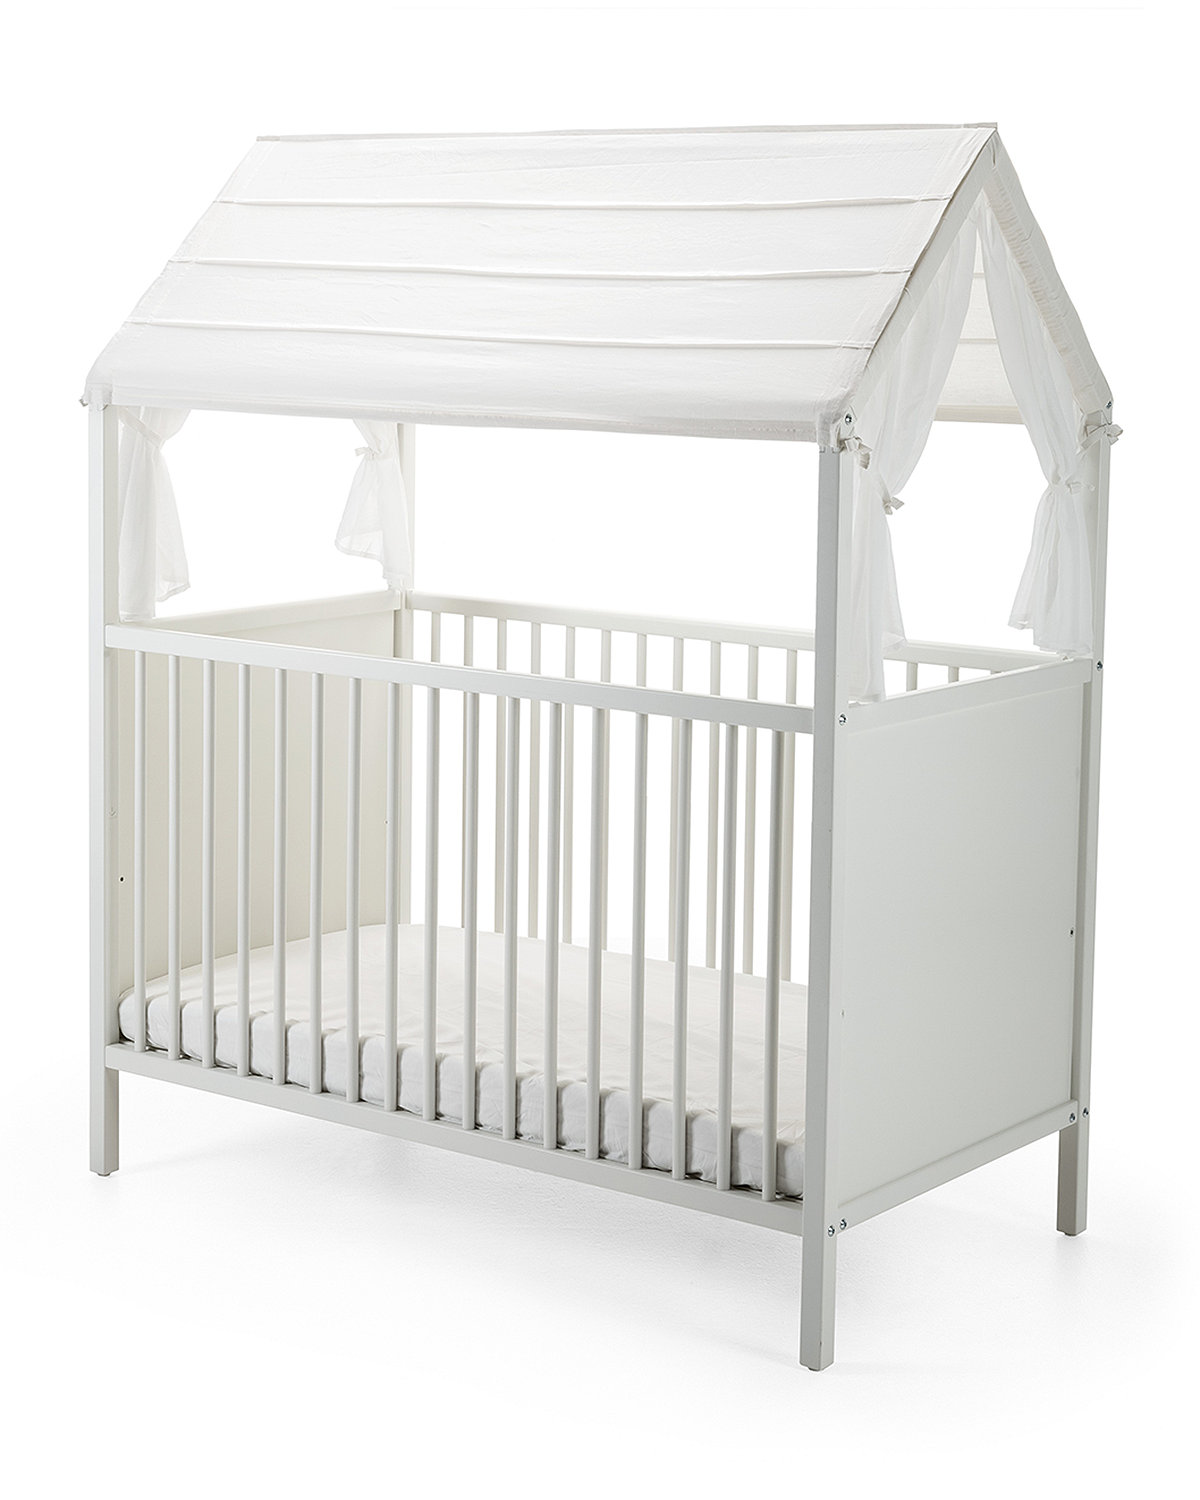 Stokke HomeÂ? Bed Roof Canopy